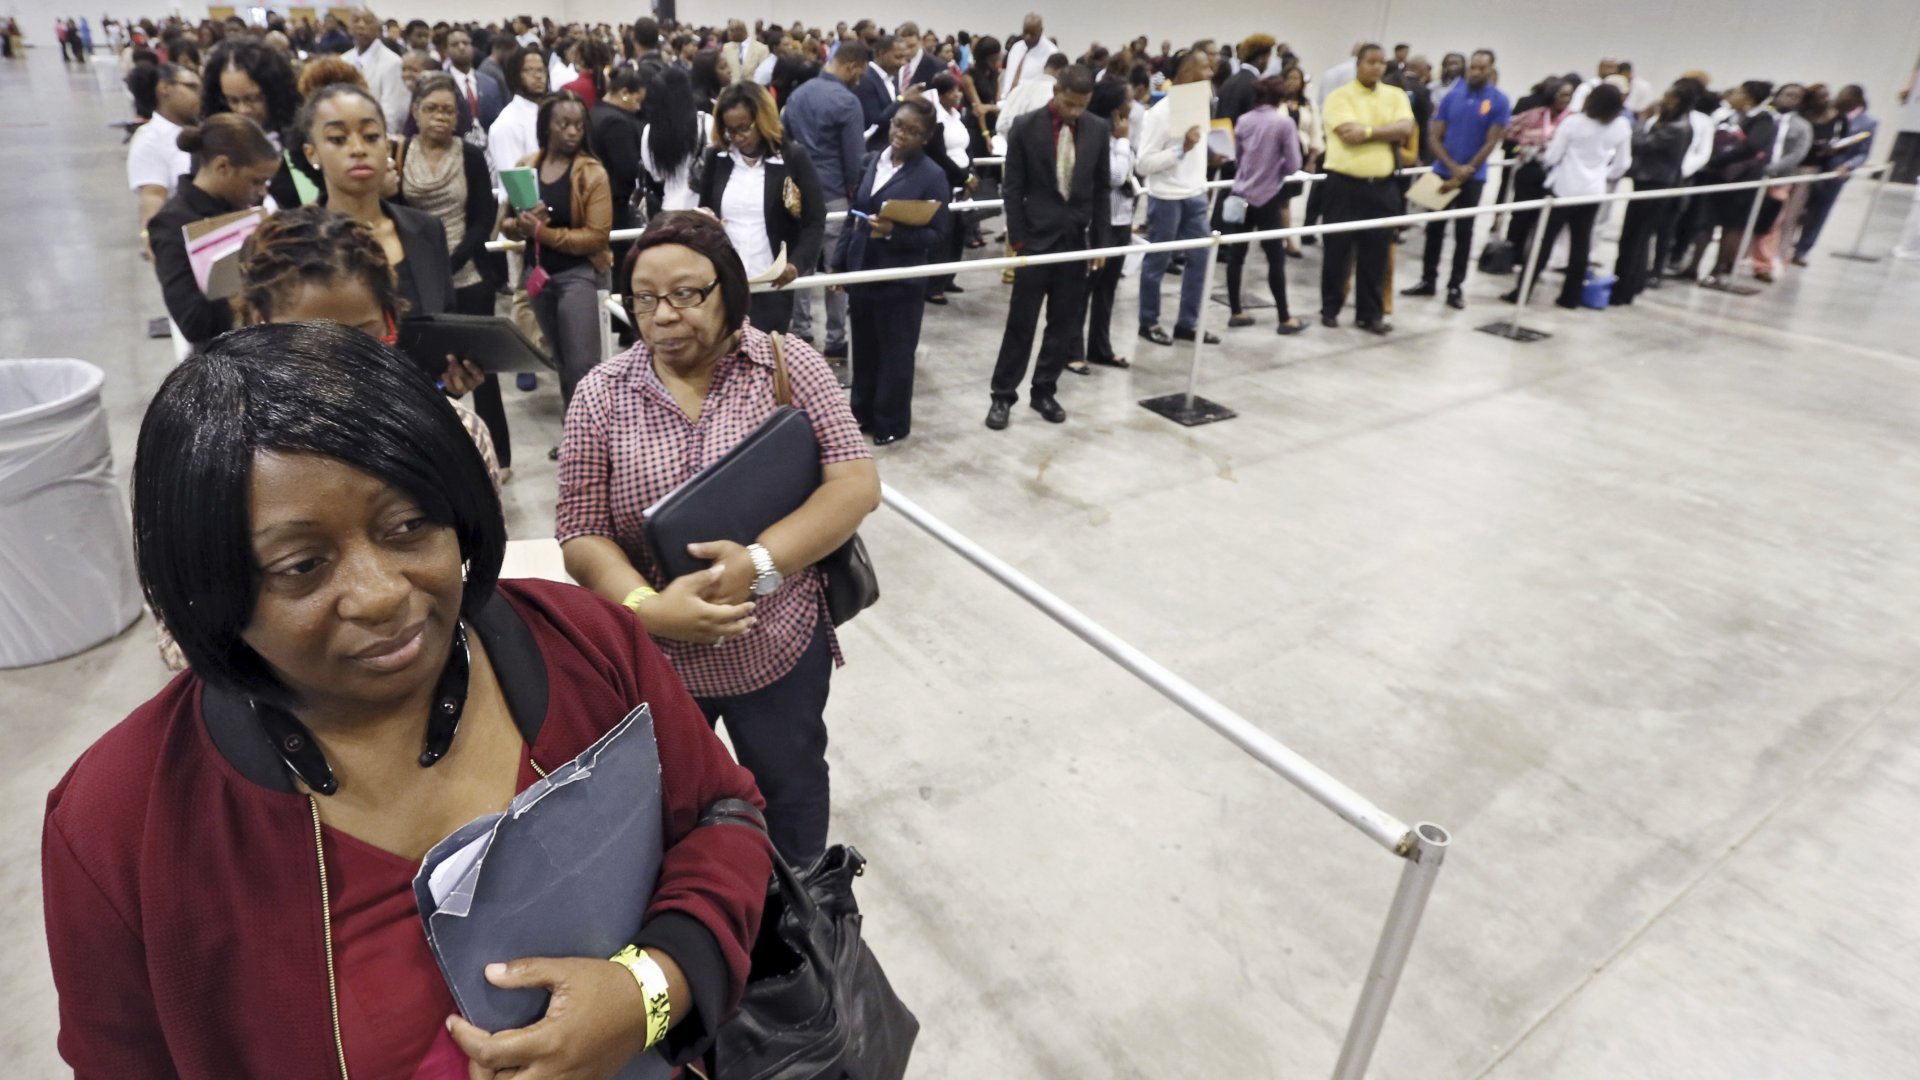 Kanockwa Horton, left, from Stone Mountain, and Jacqueline Merritt, from Atlanta, stand first in line at the Airport Community Job Fair, in Atlanta, joined by hundreds of other applicants in line before the 10 a.m. opening.